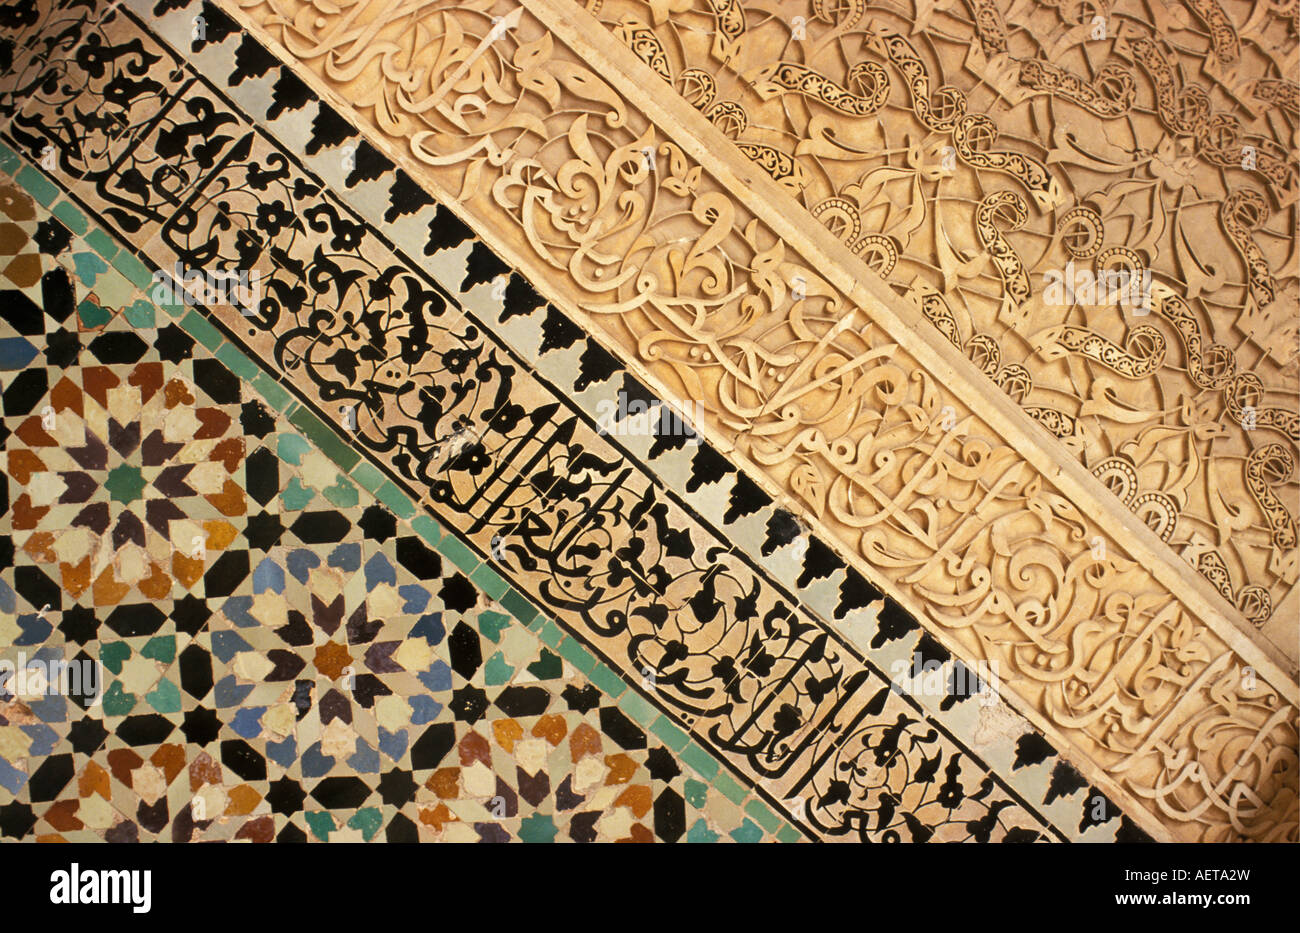 Morocco Marrakech Painted and carved wall of Medersa or Koran school - Stock Image